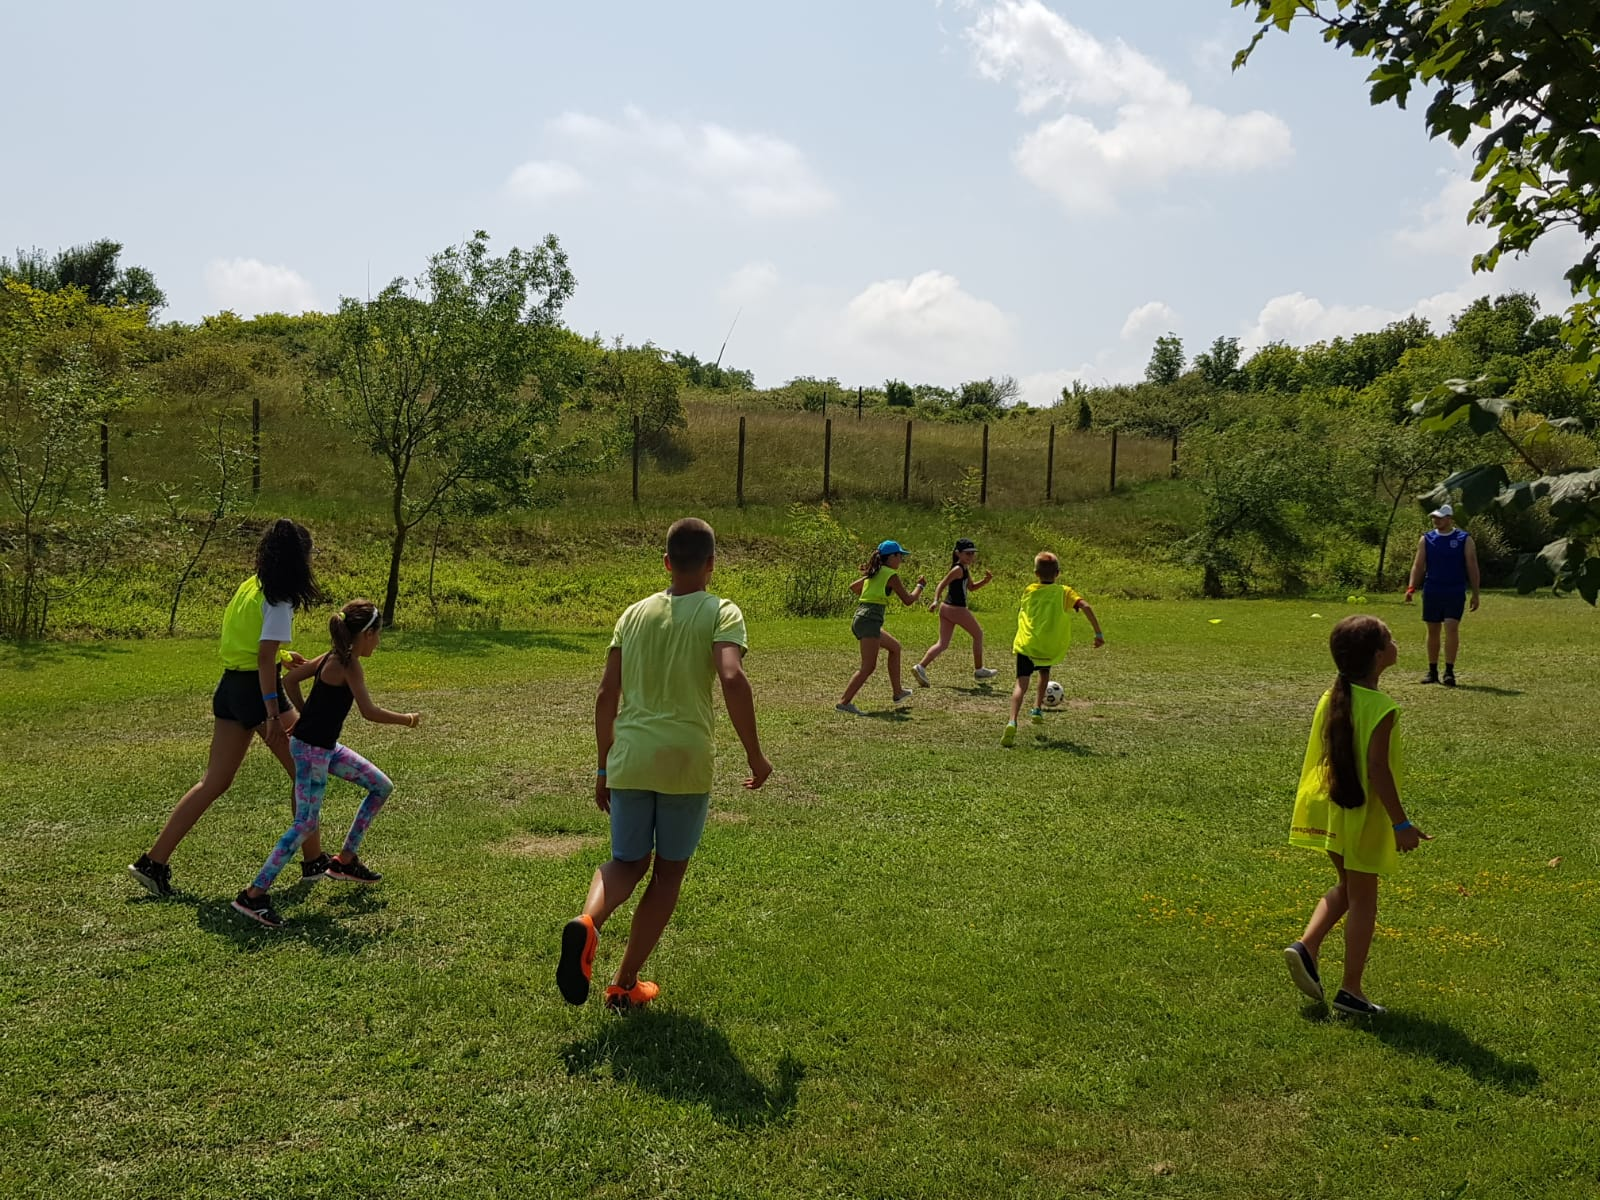 Z camp, day 14 - a frisbee game on grass field teams